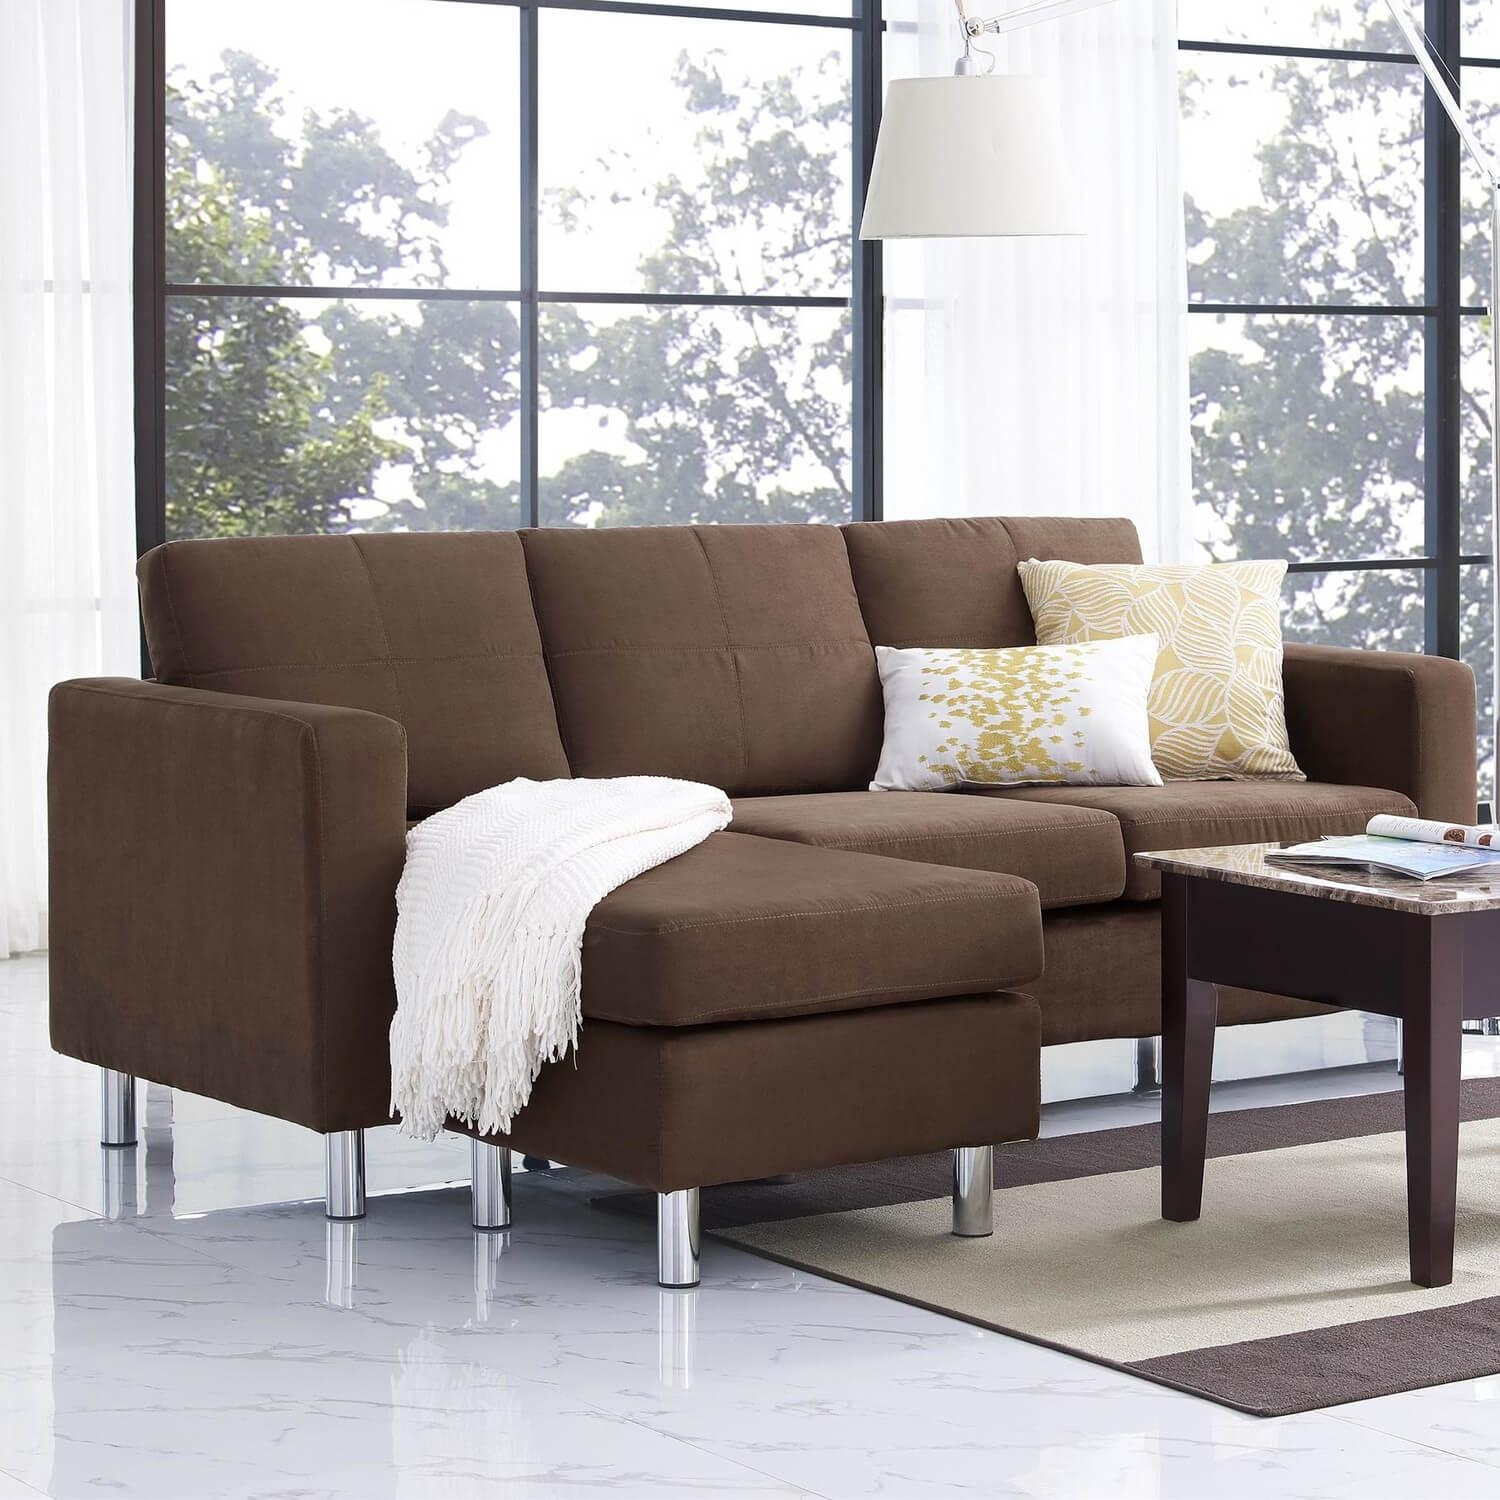 Furniture & Sofa: Best Sectional For Small Spaces | Small Space Pertaining To Small Sectional Sofas For Small Spaces (Image 13 of 20)